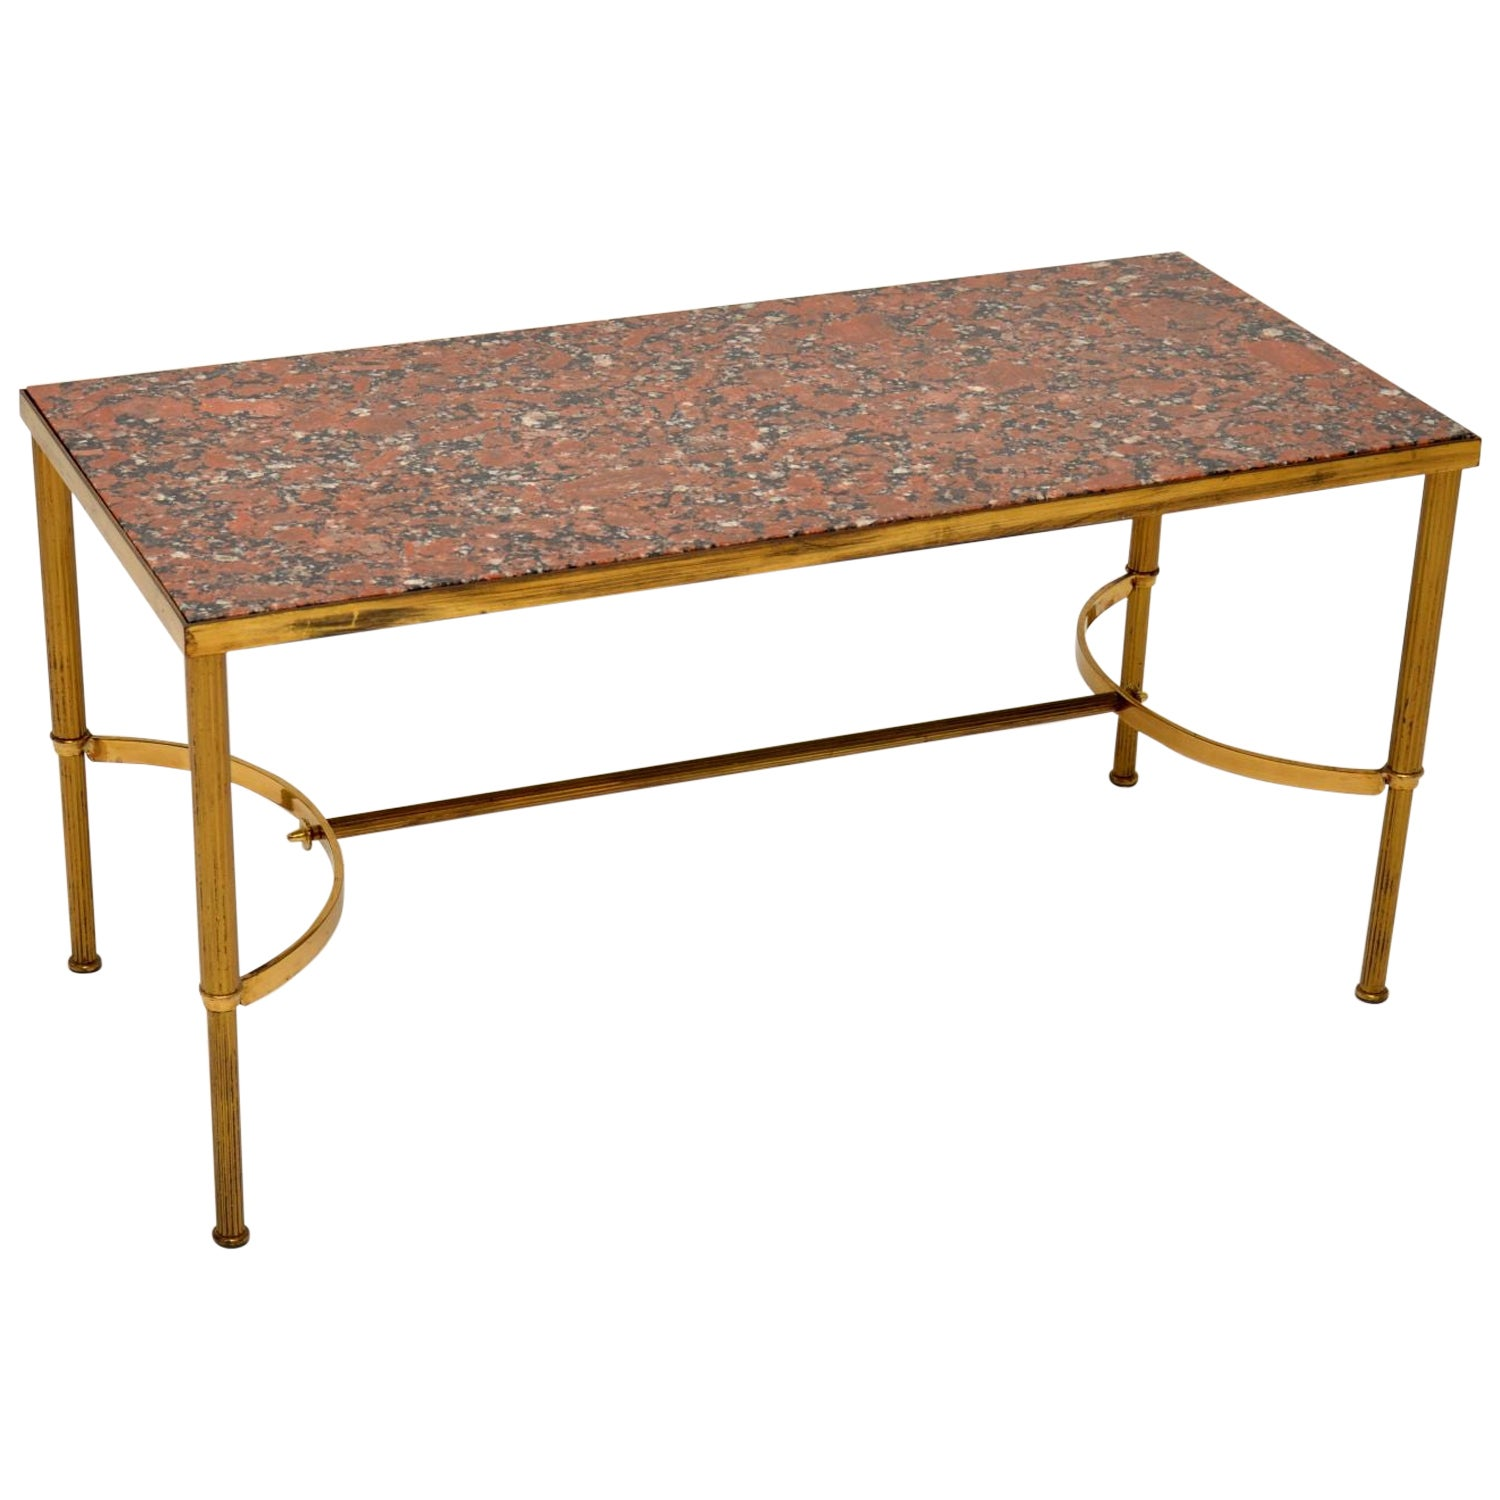 1960s Vintage Italian Brass and Marble Coffee Table